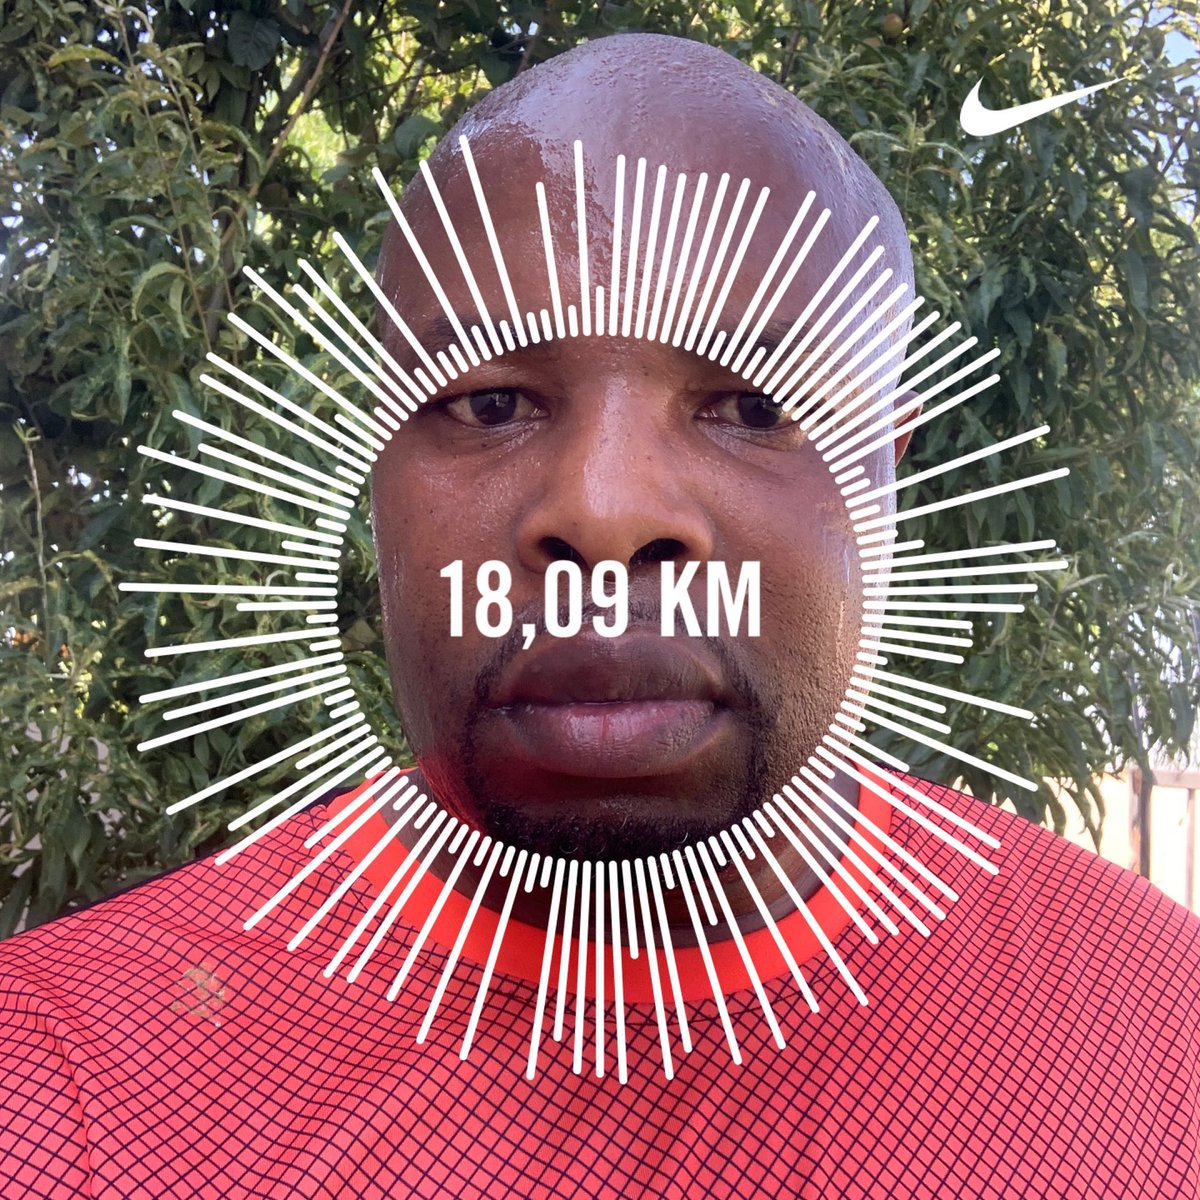 Today's session, regular exercise is good. As I continue with fitness and healthy journey.#Healthylife https://t.co/MvV4nFIJsB